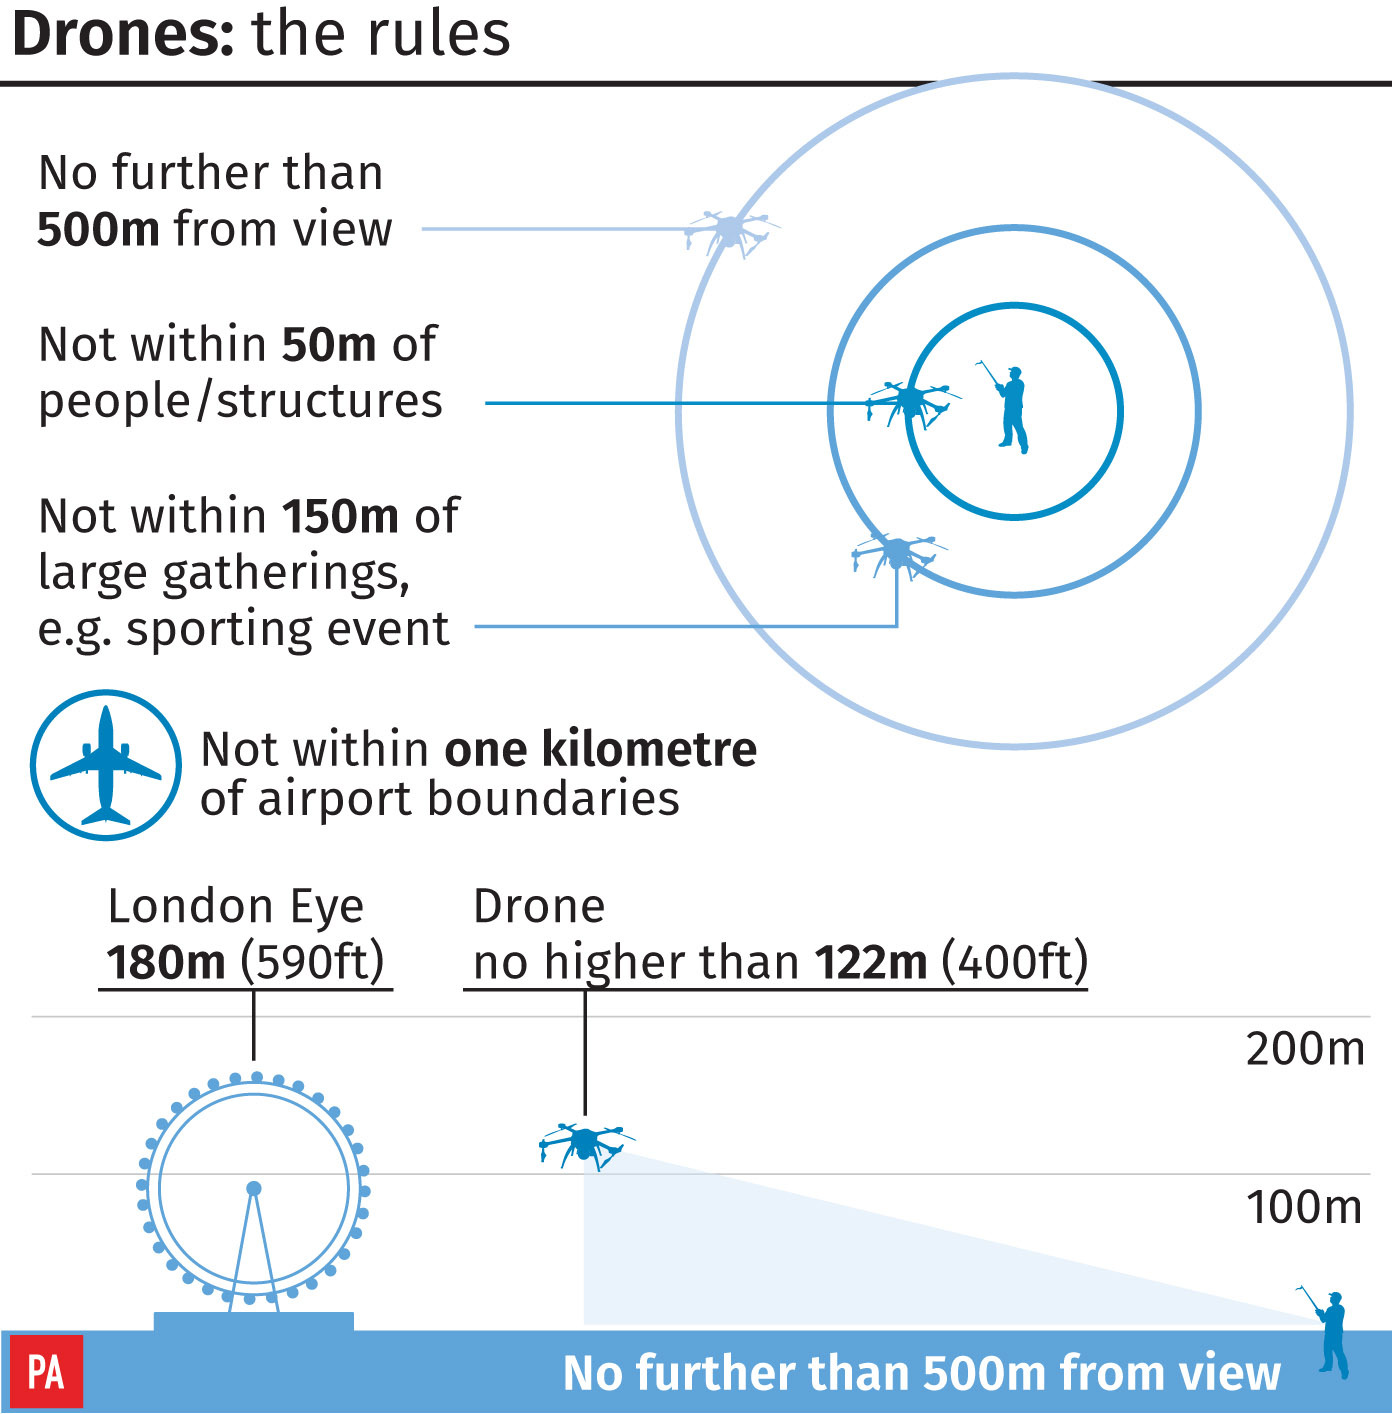 Departures halted at London's Heathrow Airport due to drone sighting